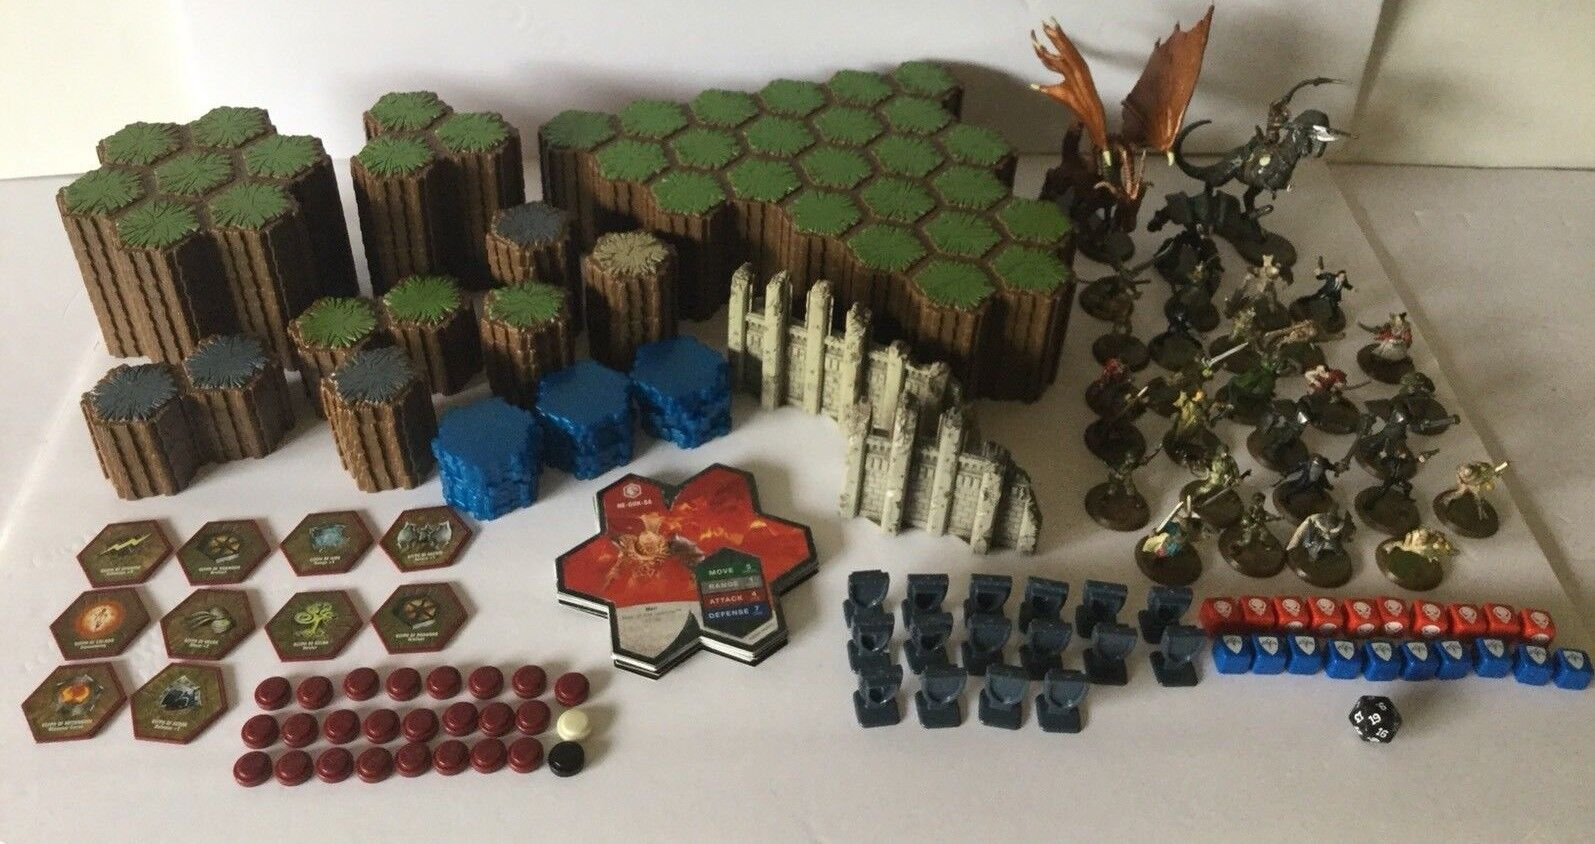 Huge Lot of 206 Heroscape Game Pieces - Figures, Terrain Pieces, Cards & More